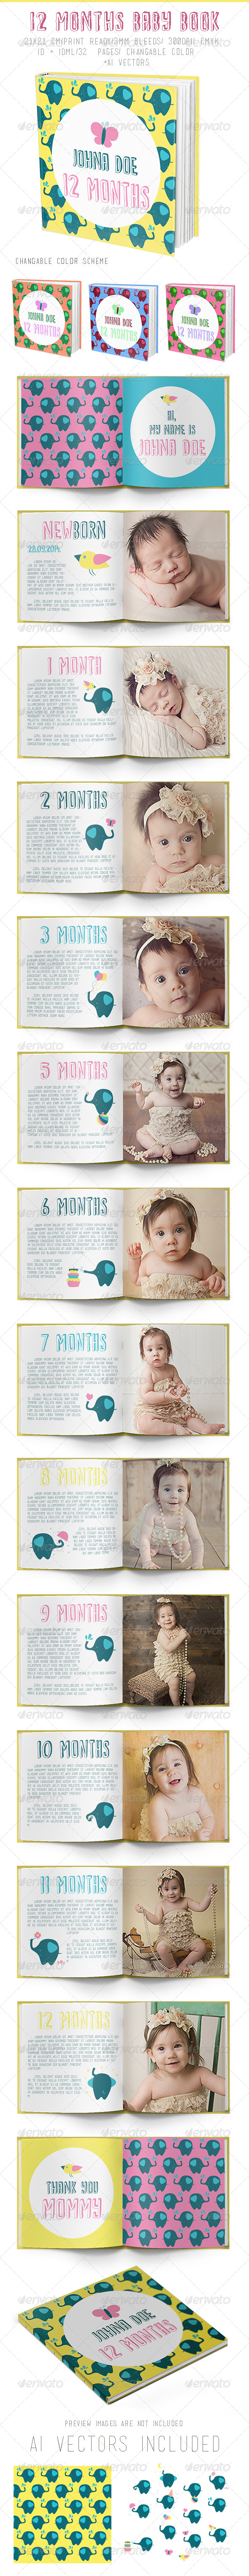 GraphicRiver 12 Months Baby Book 8748066